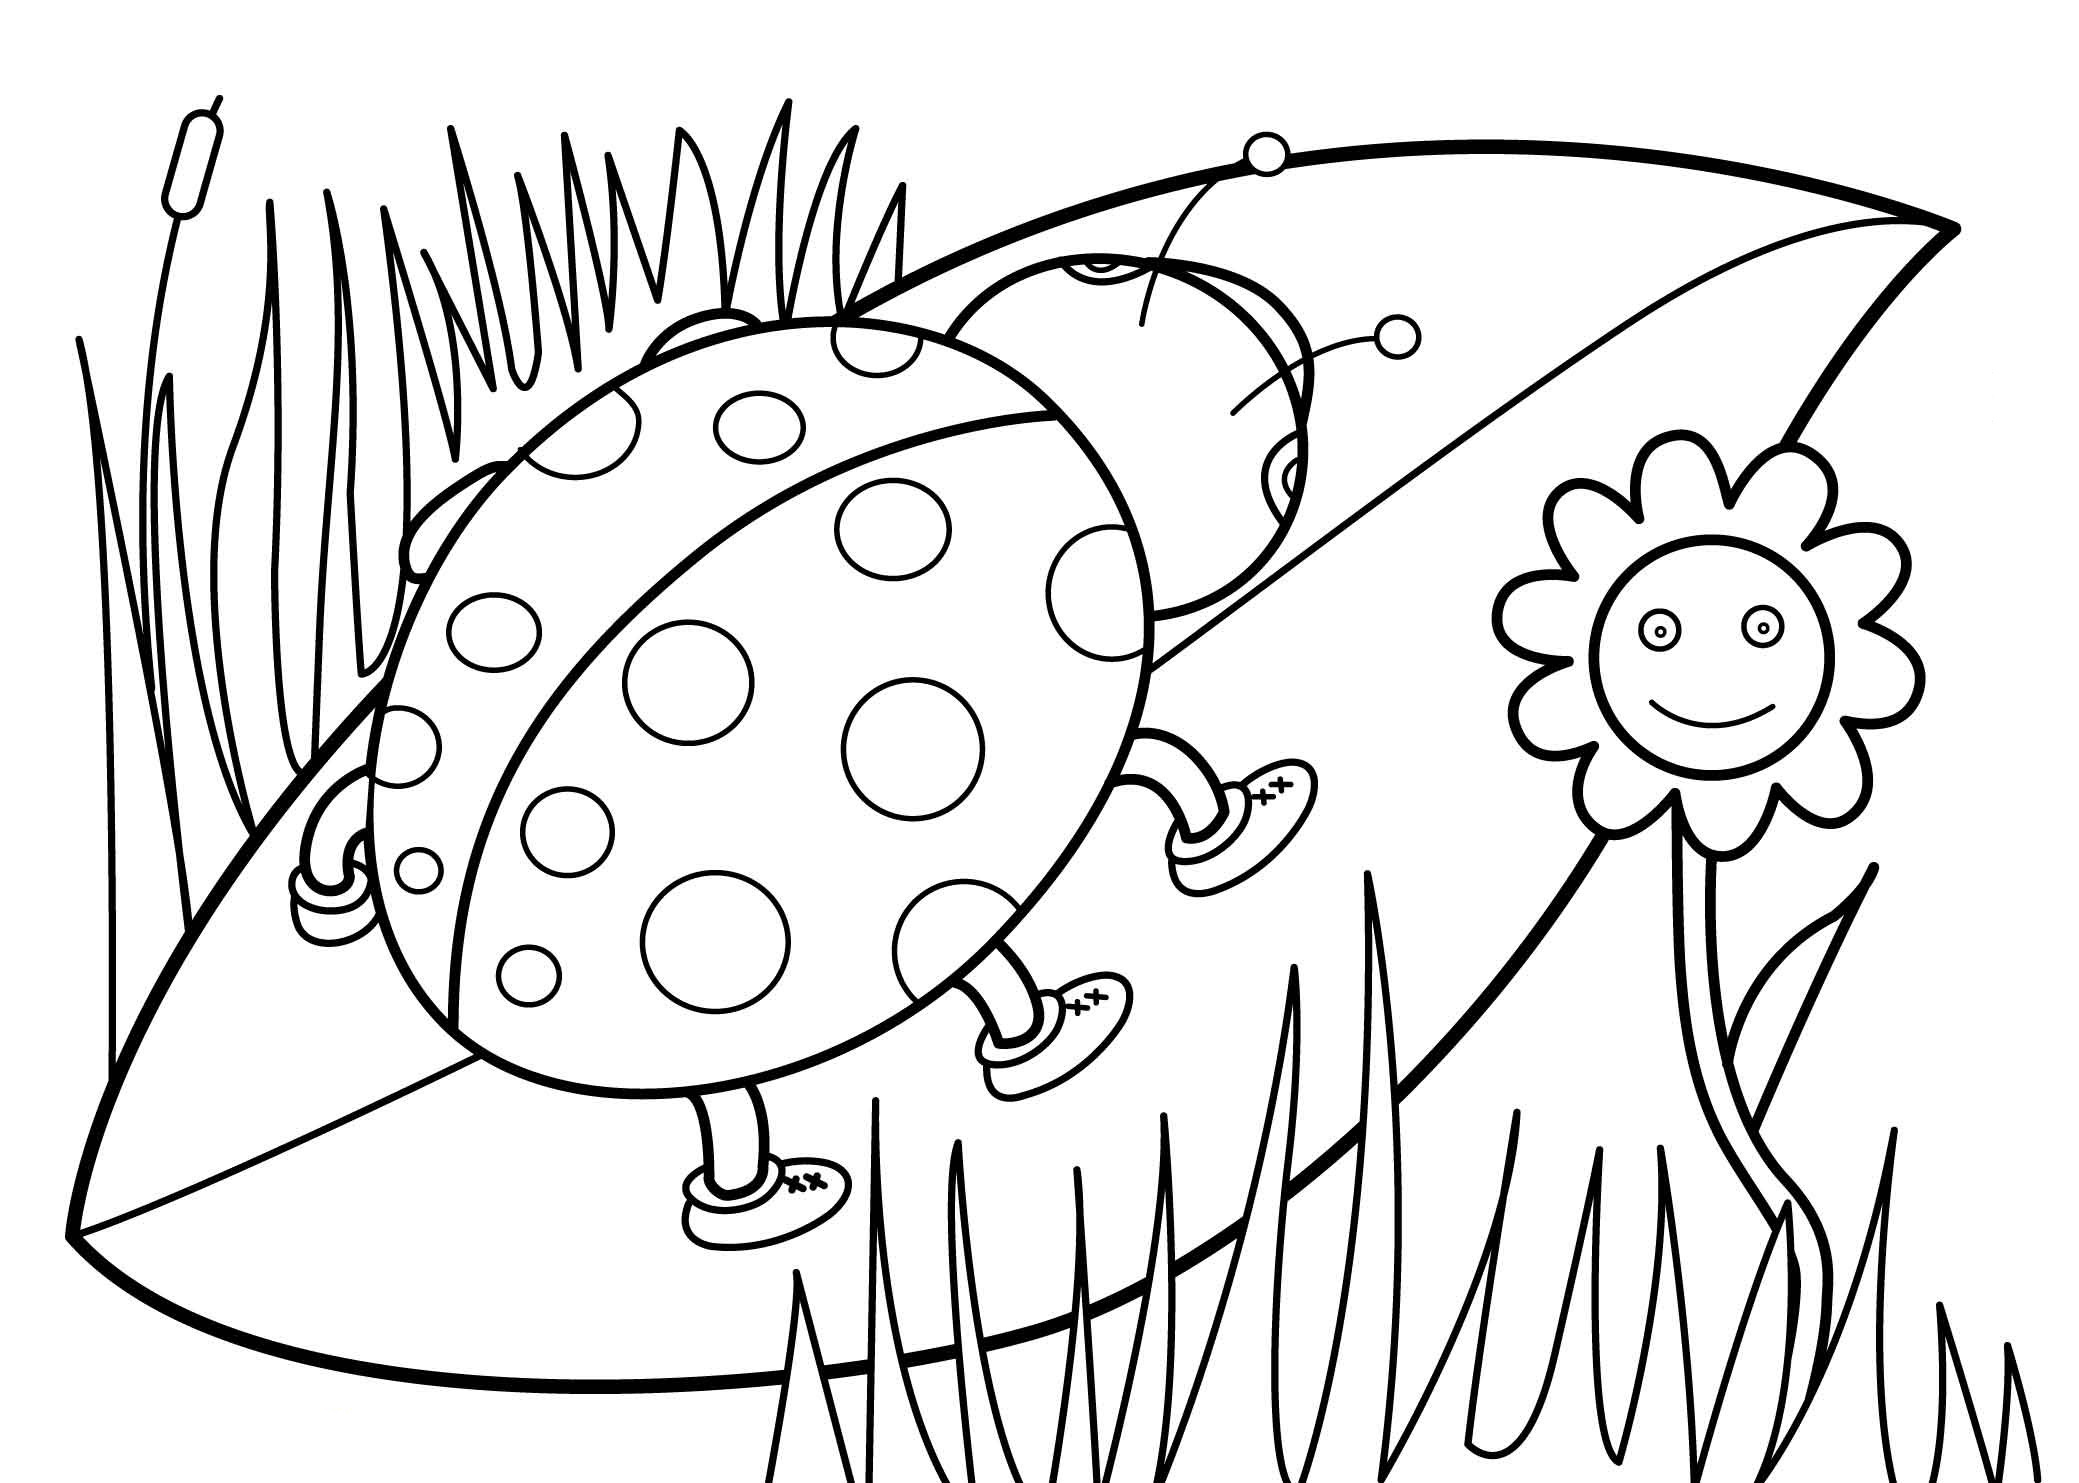 pictures of kids coloring free printable tangled coloring pages for kids cool2bkids pictures of kids coloring